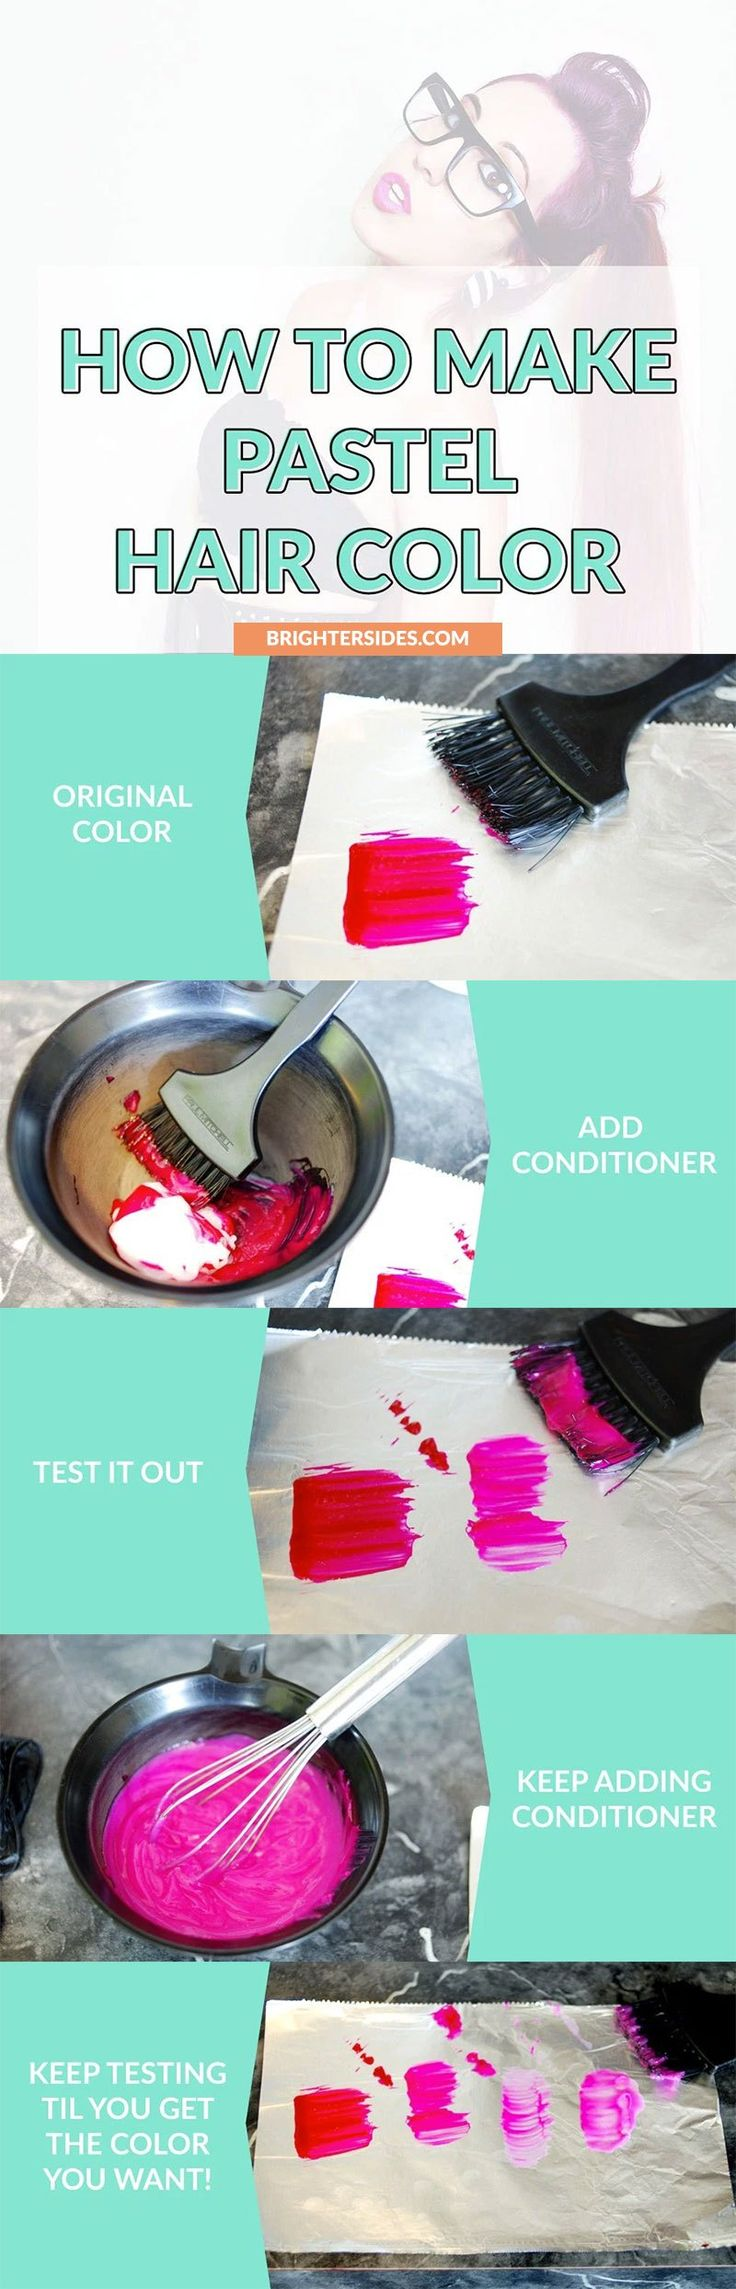 How to make your own DIY pastel hair dye and save money! This article has step-by-step instructions and tips from a professional hairstylist.